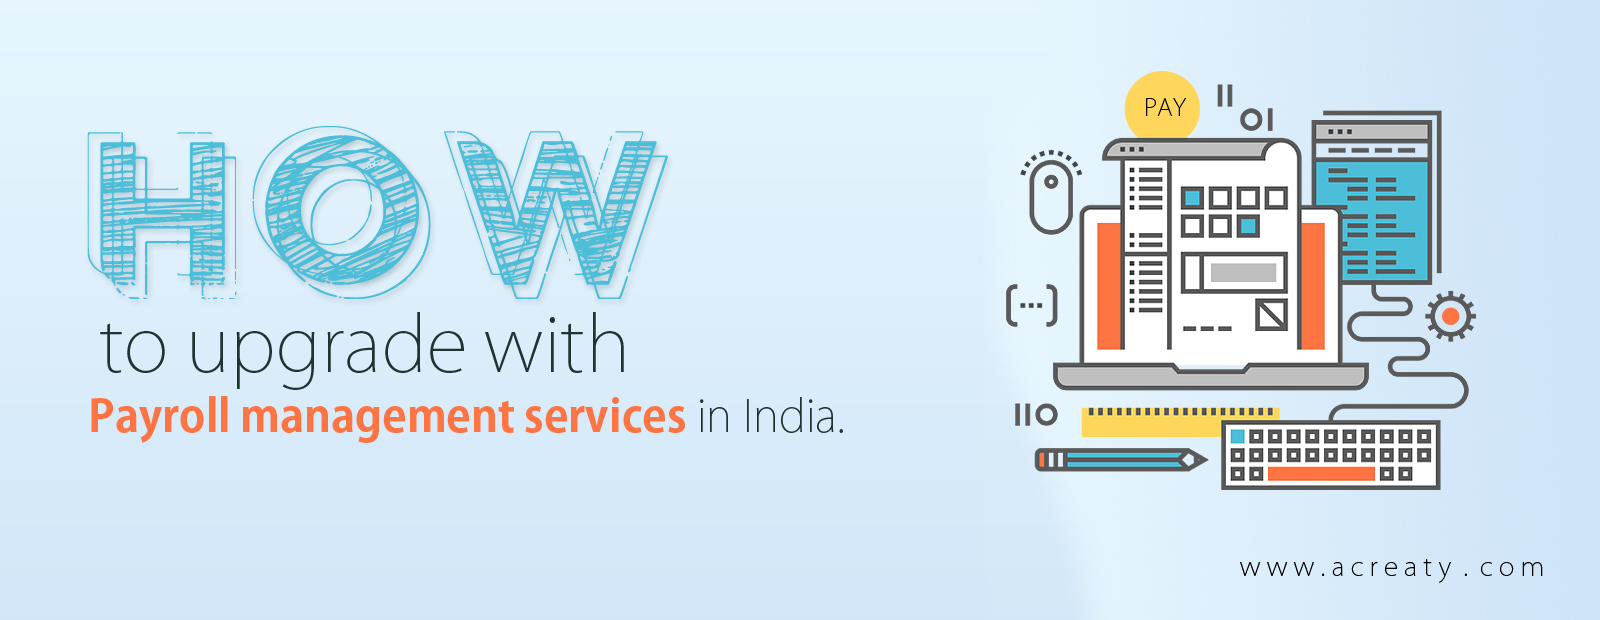 How to upgrade with payroll management services in India.